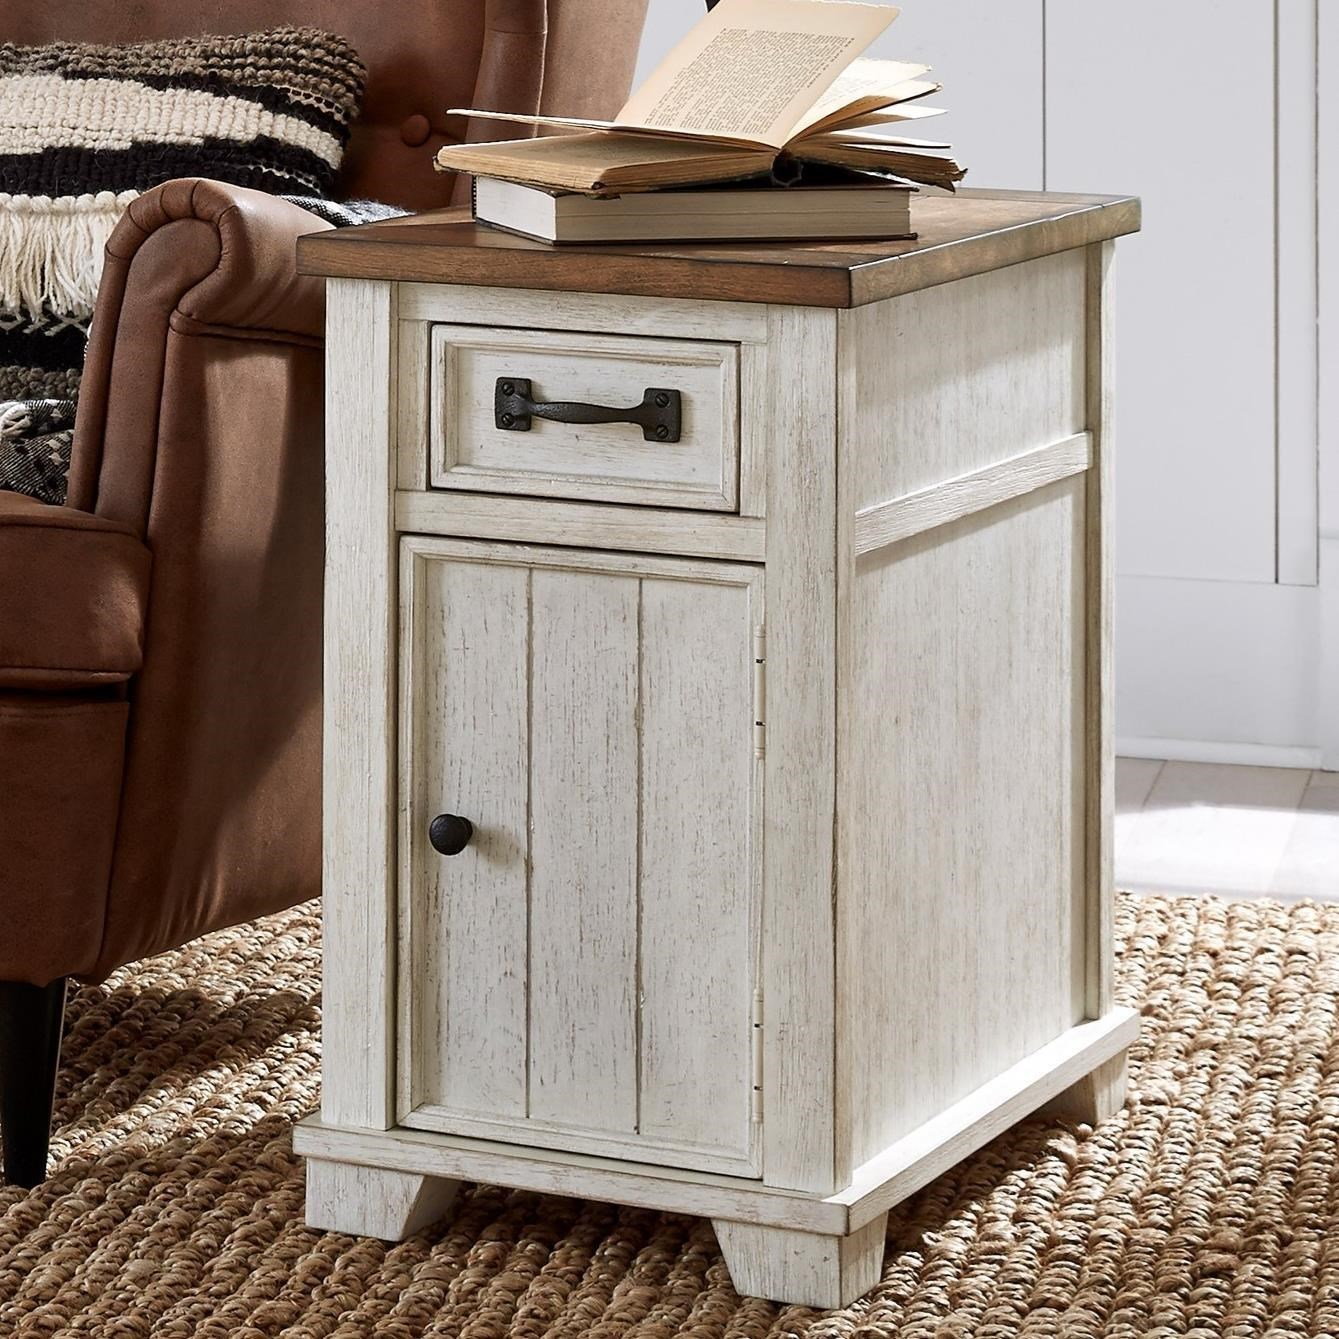 5519 Chairside Cabinet Table by Null Furniture at Westrich Furniture & Appliances